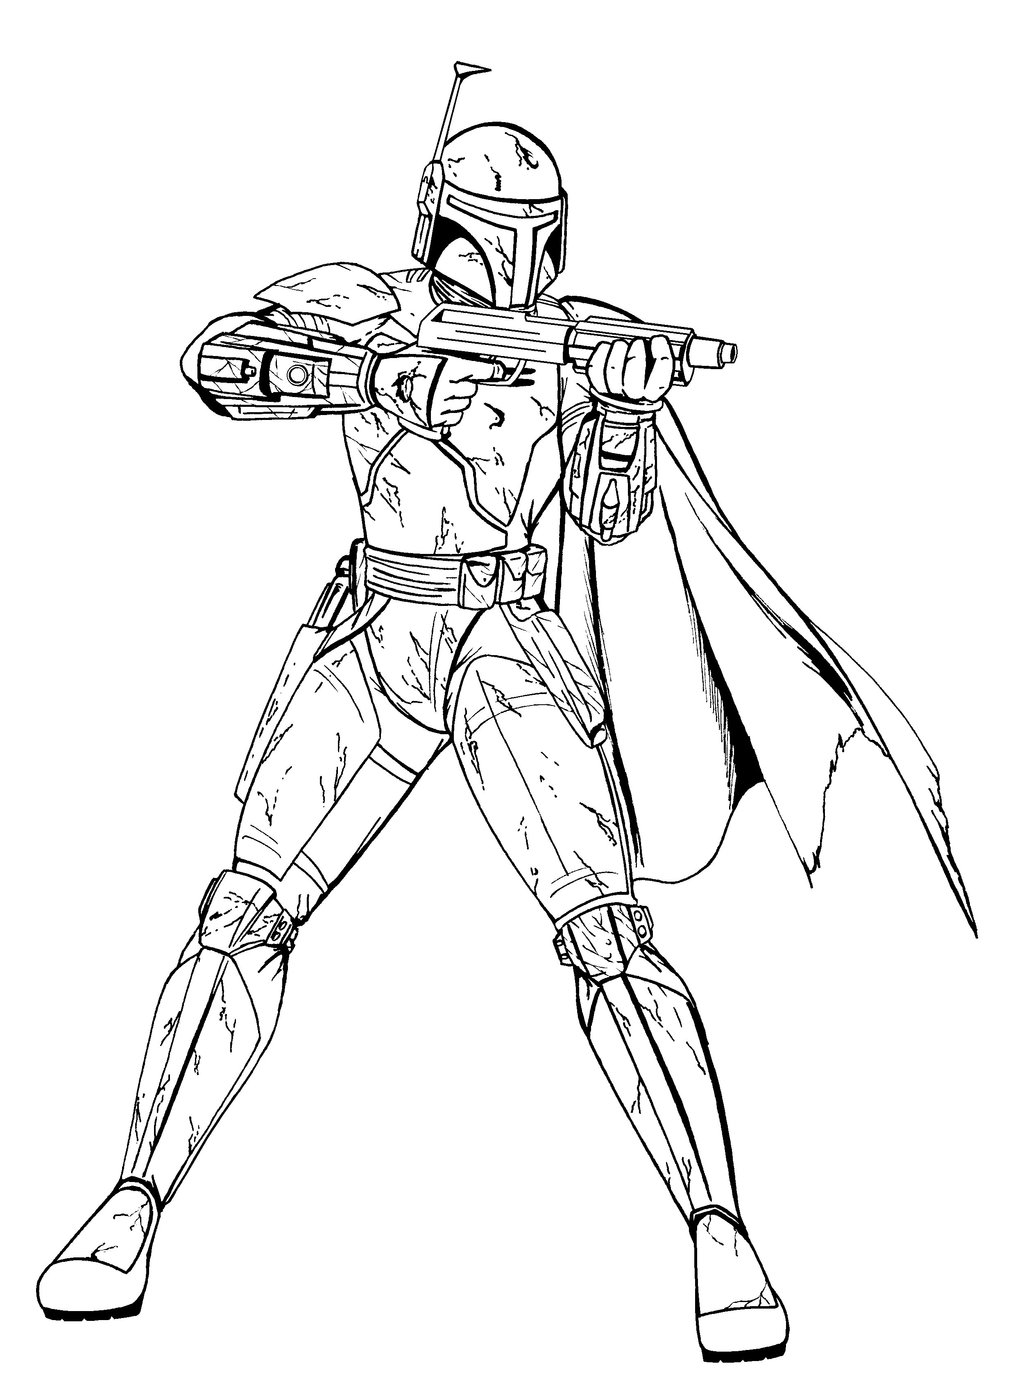 star wars colouring printables star wars free to color for kids star wars kids coloring printables colouring wars star